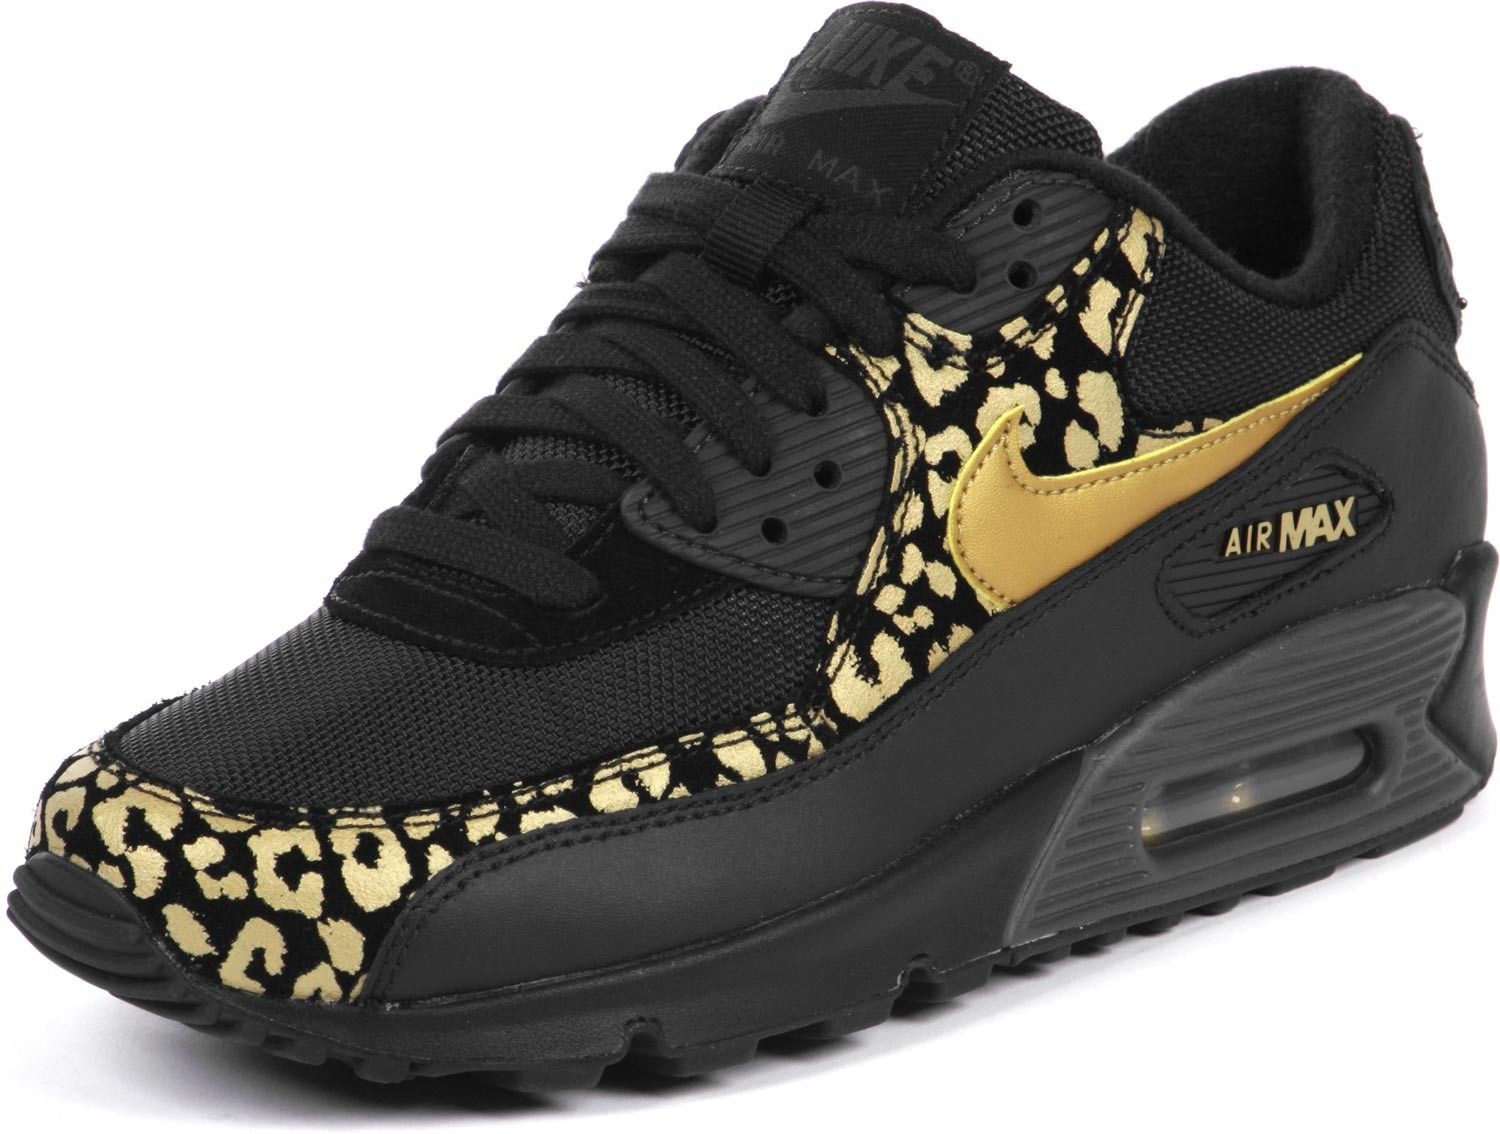 nike wmns air max 90 black gold leopard women's shoes